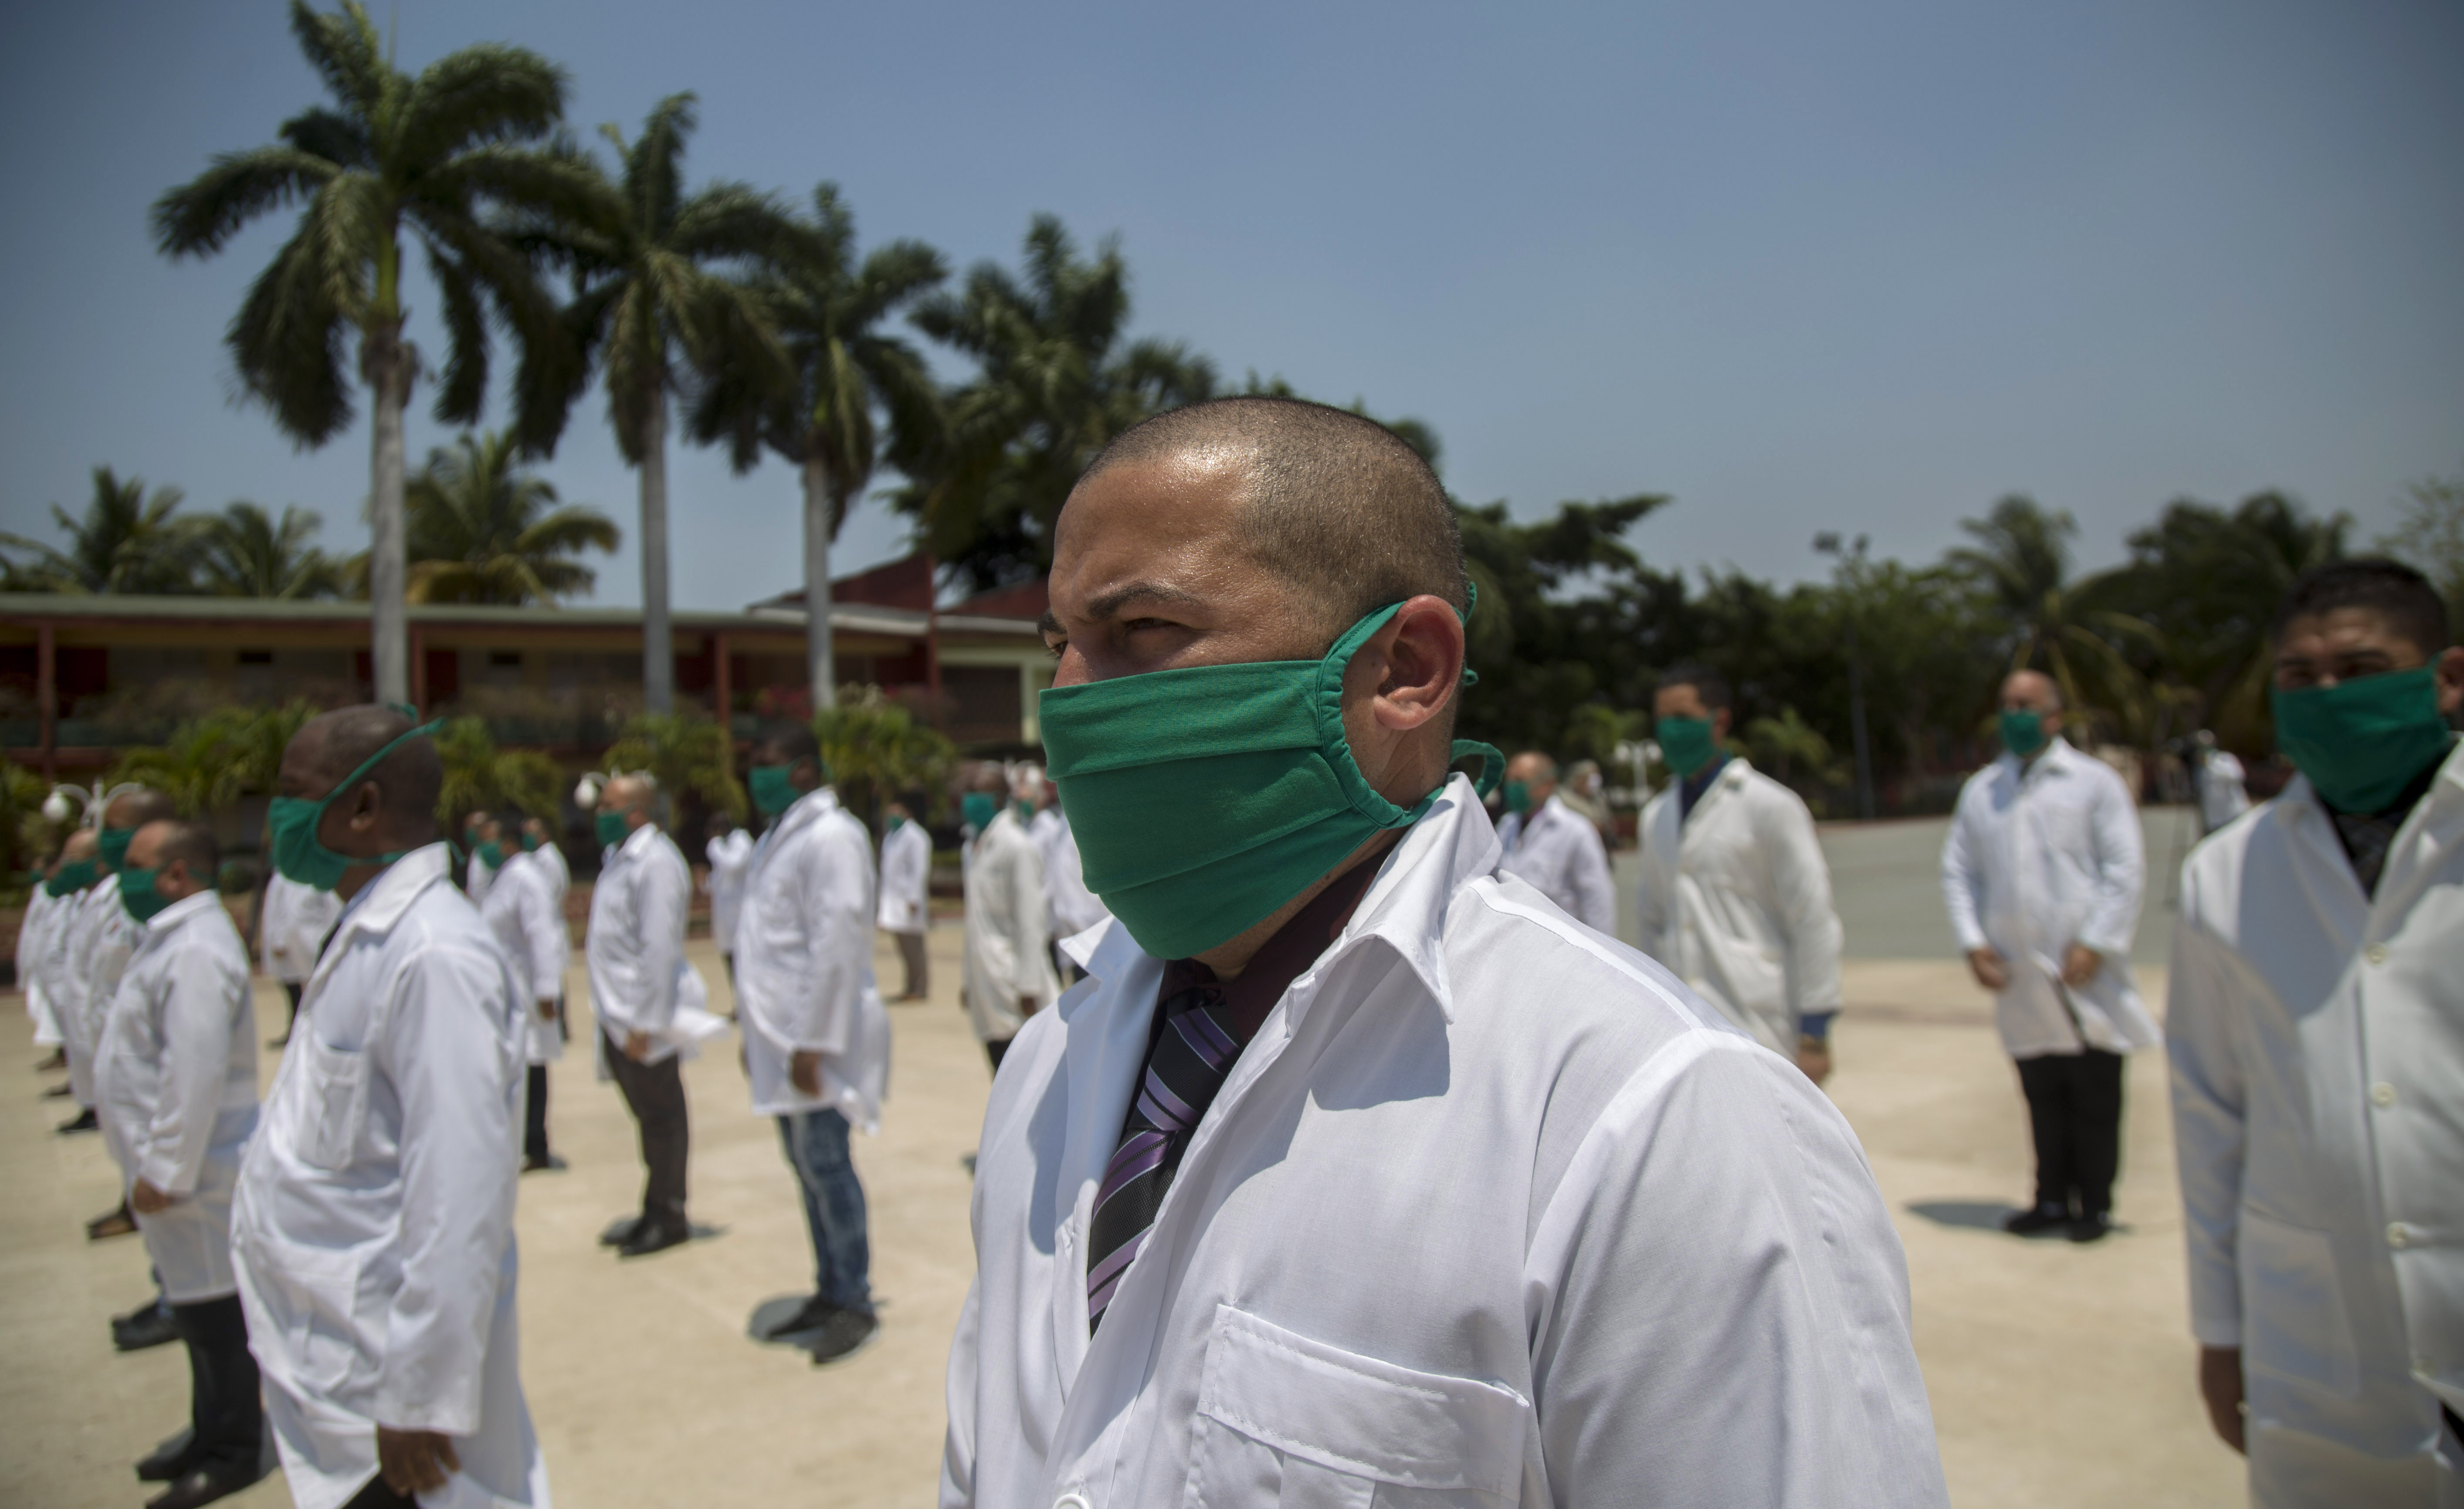 Cuban doctors attend a farewell ceremony in Havana, Cuba, on April 12 before leaving to help with the novel coronavirus outbreak in Italy.